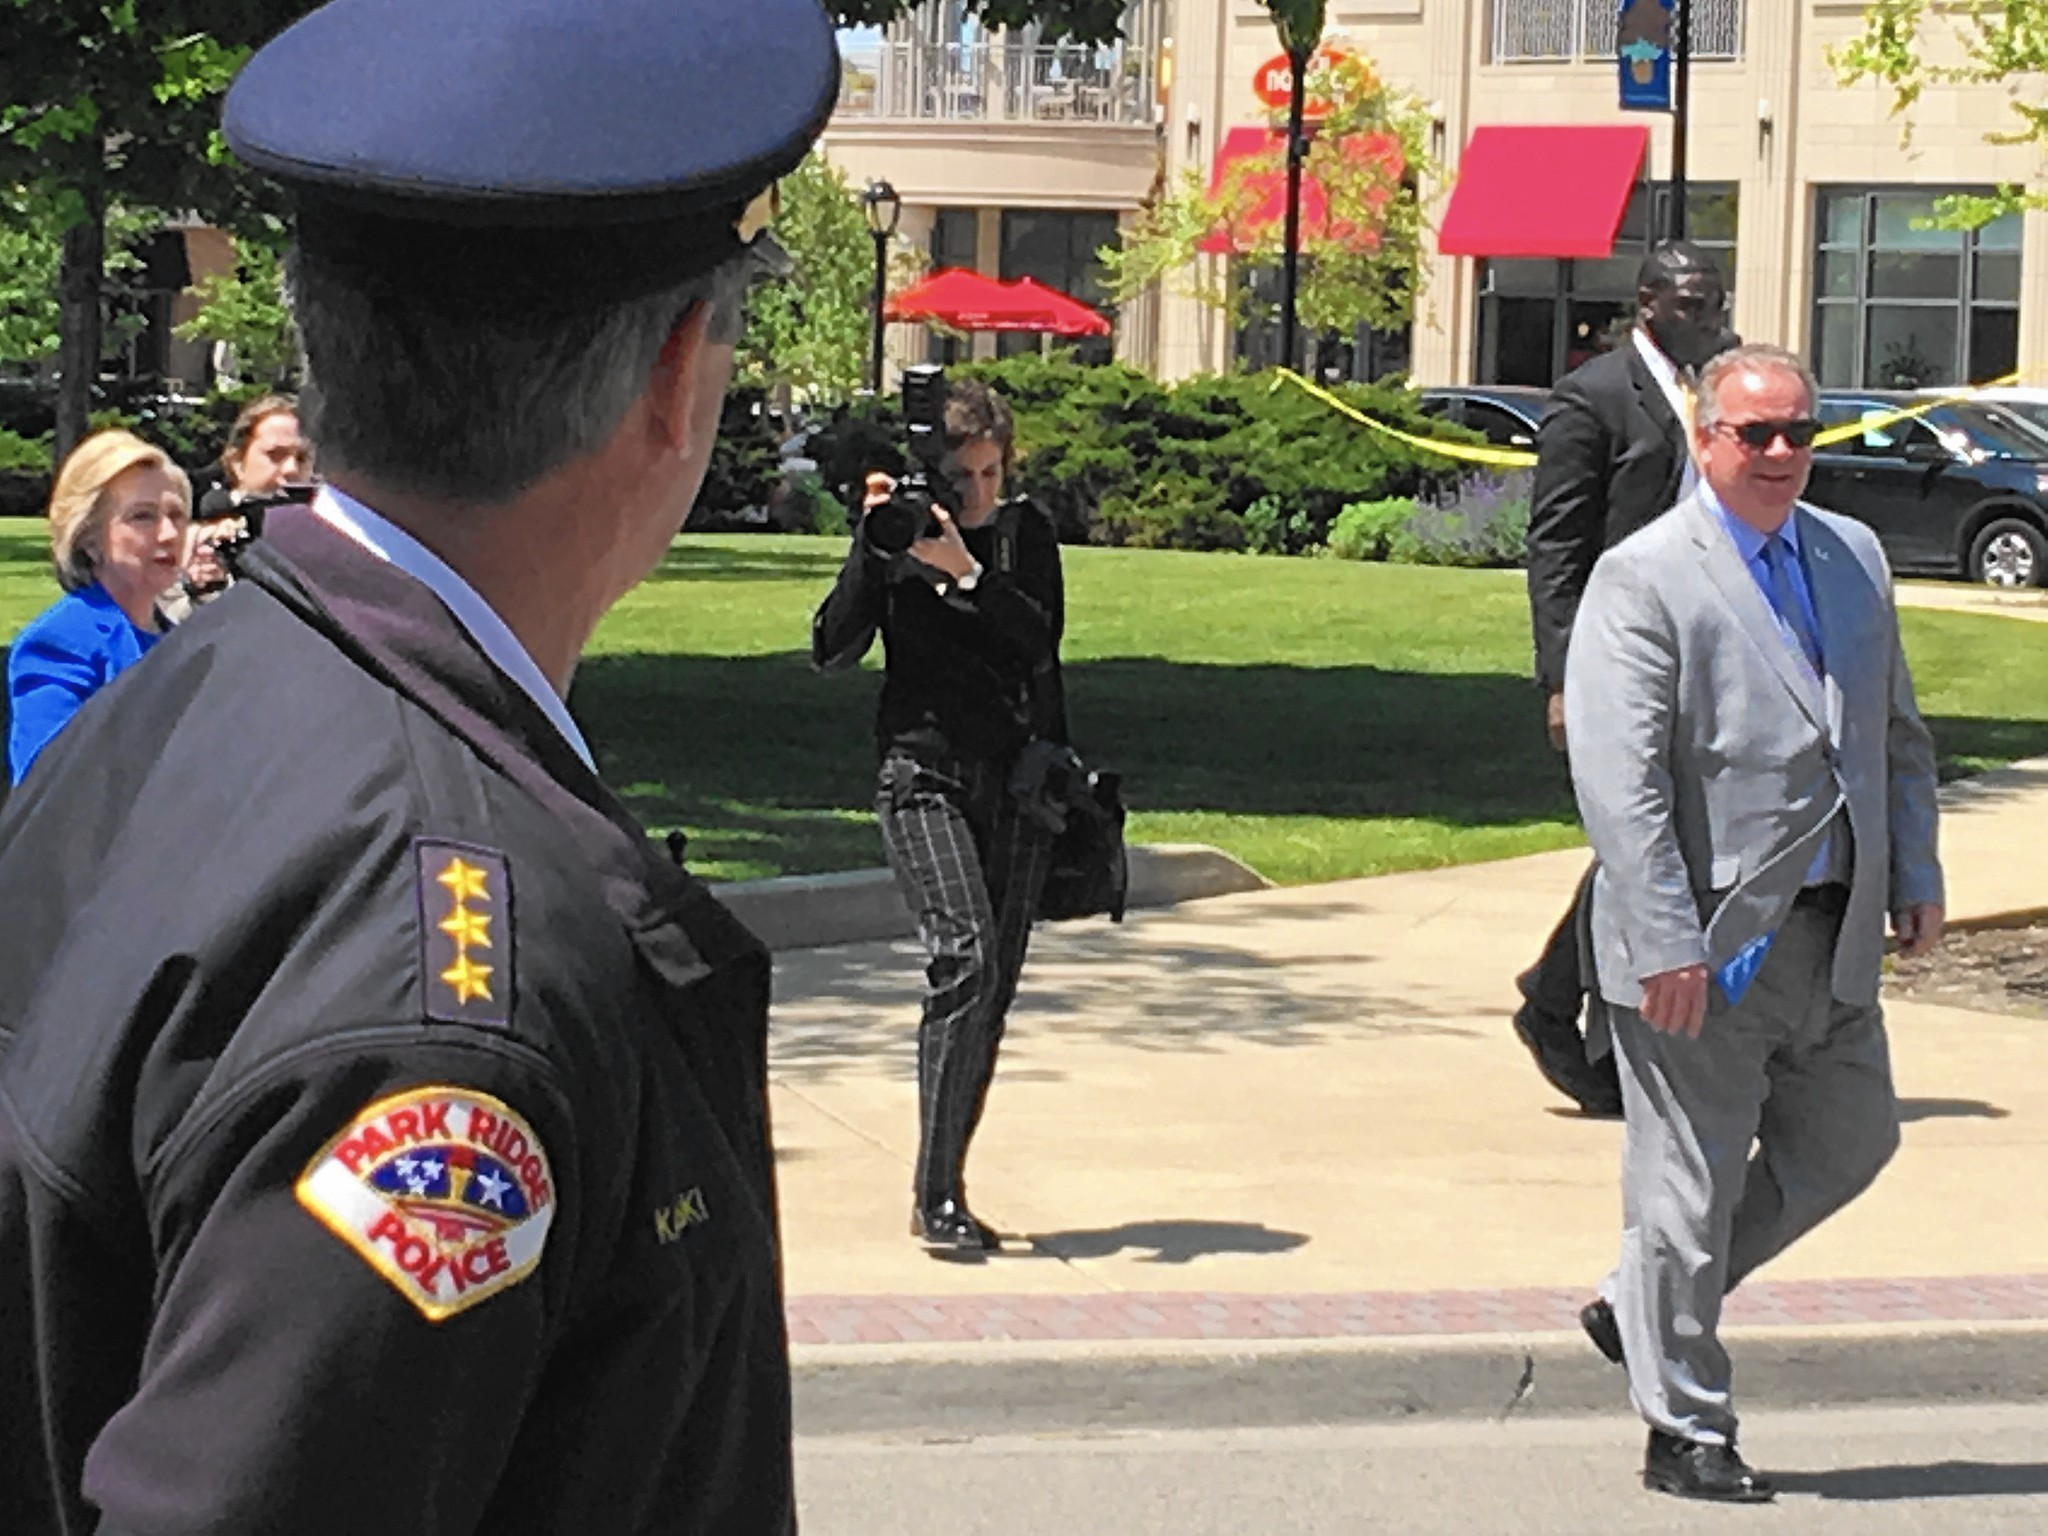 Police Costs For Clinton Visit To Park Ridge Under 2 000